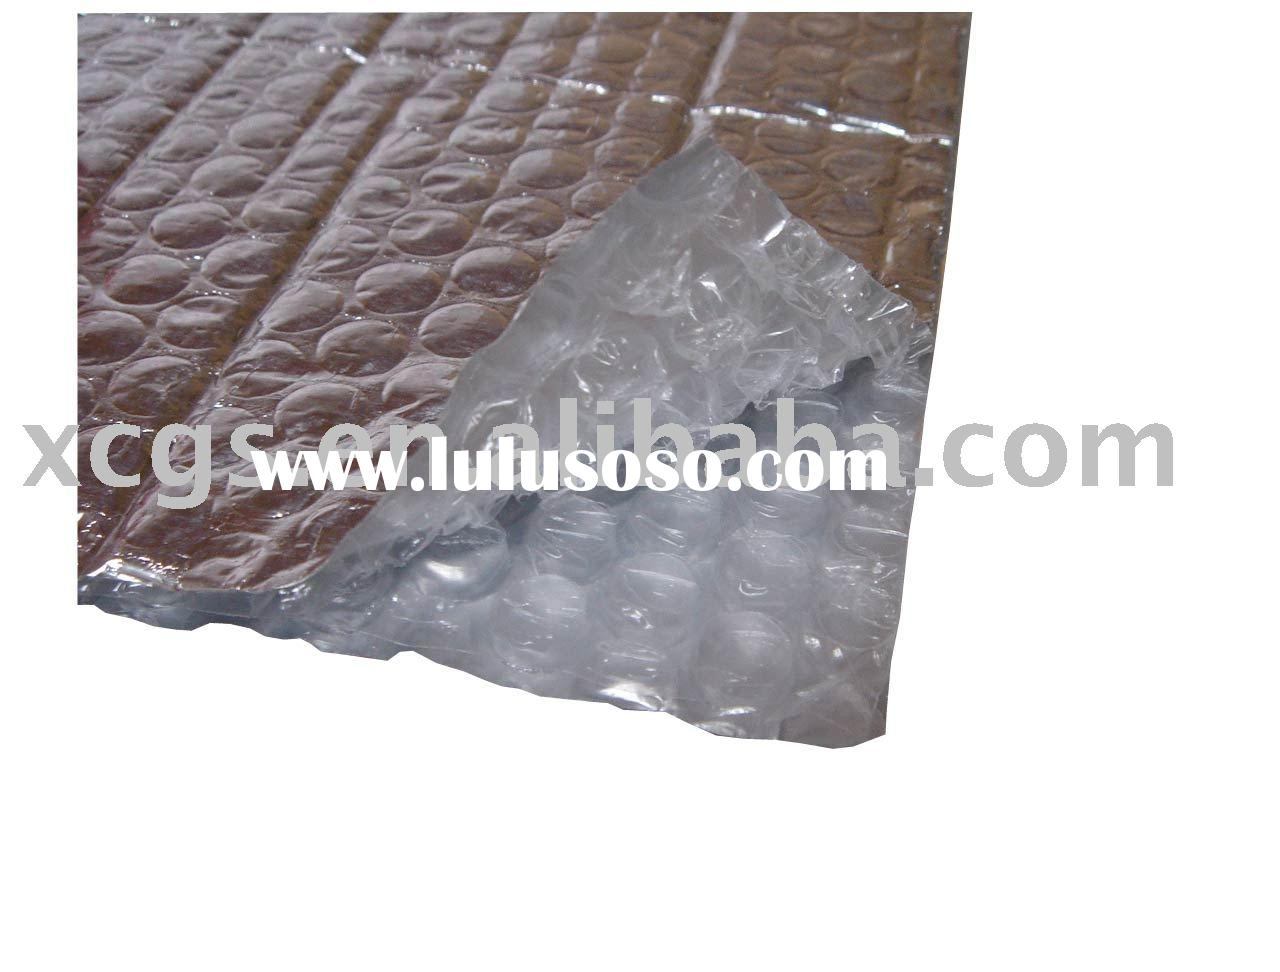 Thermal / Heat Aluminum Bubble Foil Insulation